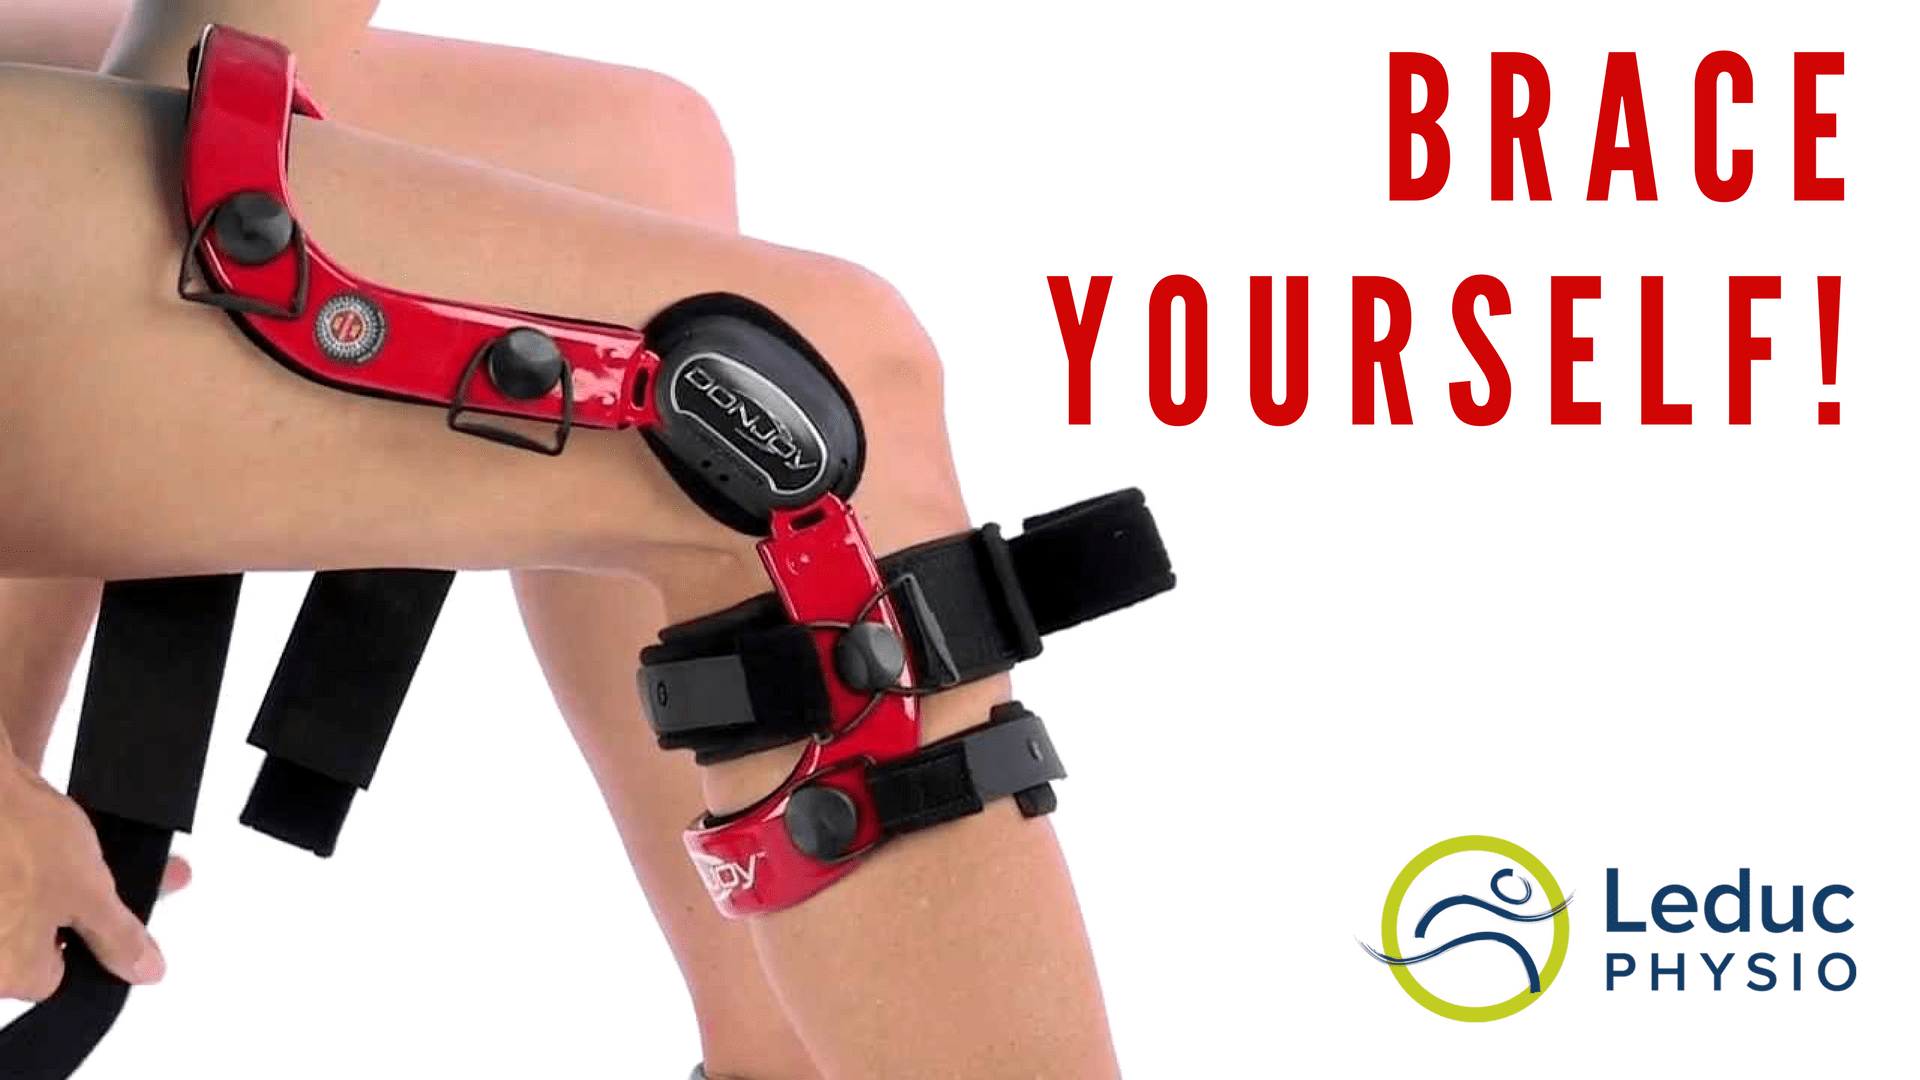 Newsletter-Image-for-Blog2FArticle-1 Would Bracing Help With Your Joint Instabilities and Pain?